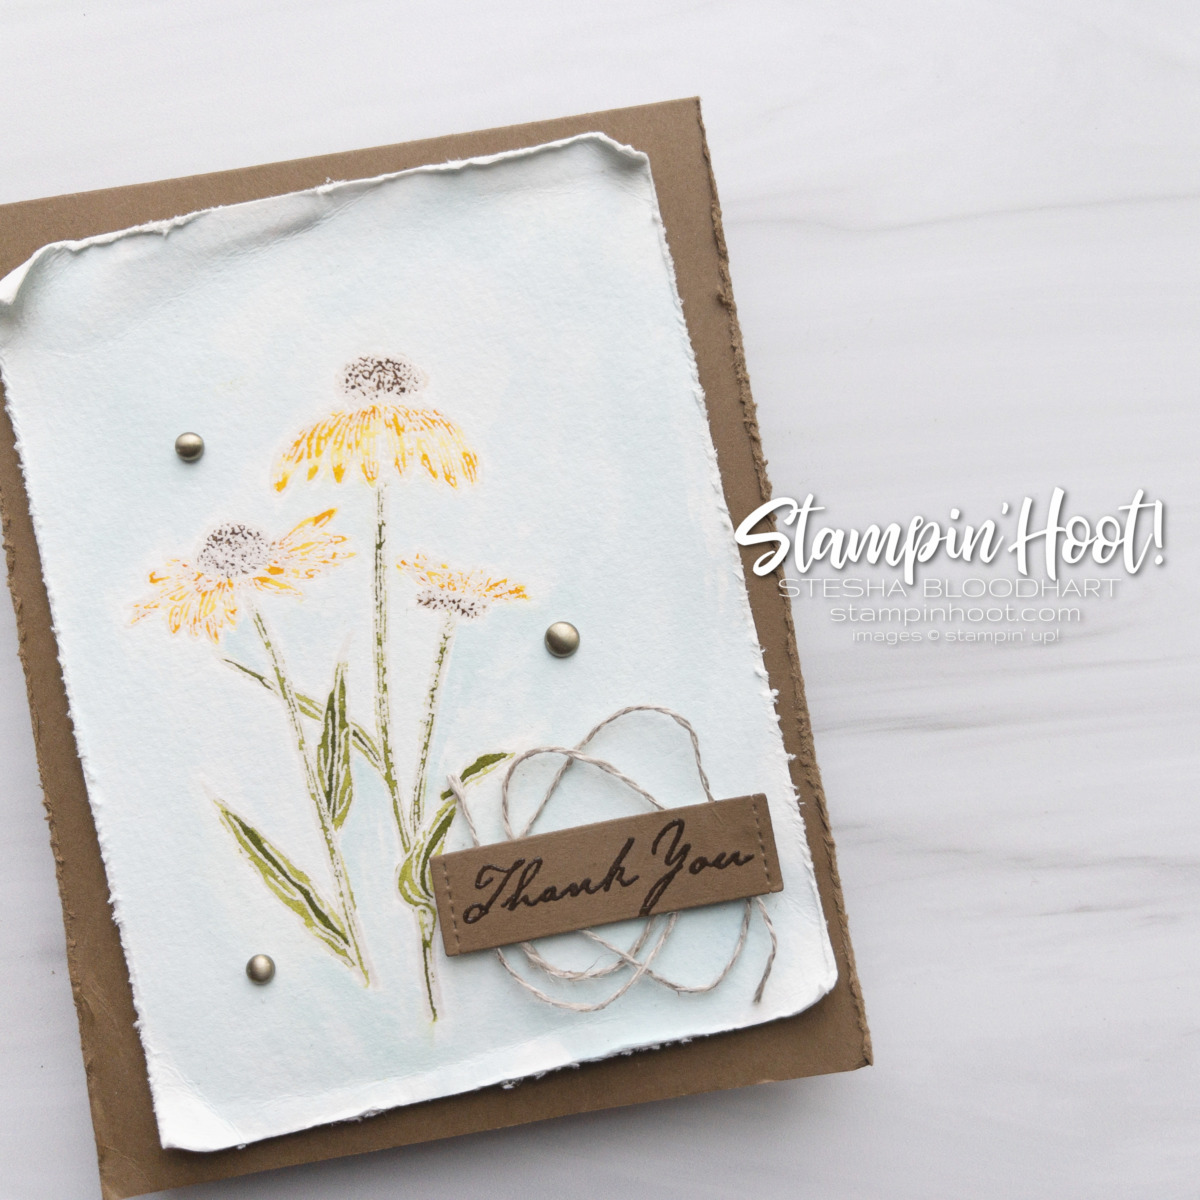 Nature's Harvest Stamp Set from Stampin' Up! Available August 3, 2021. Thank you card by Stesha Bloodhart Stampin' Hoot